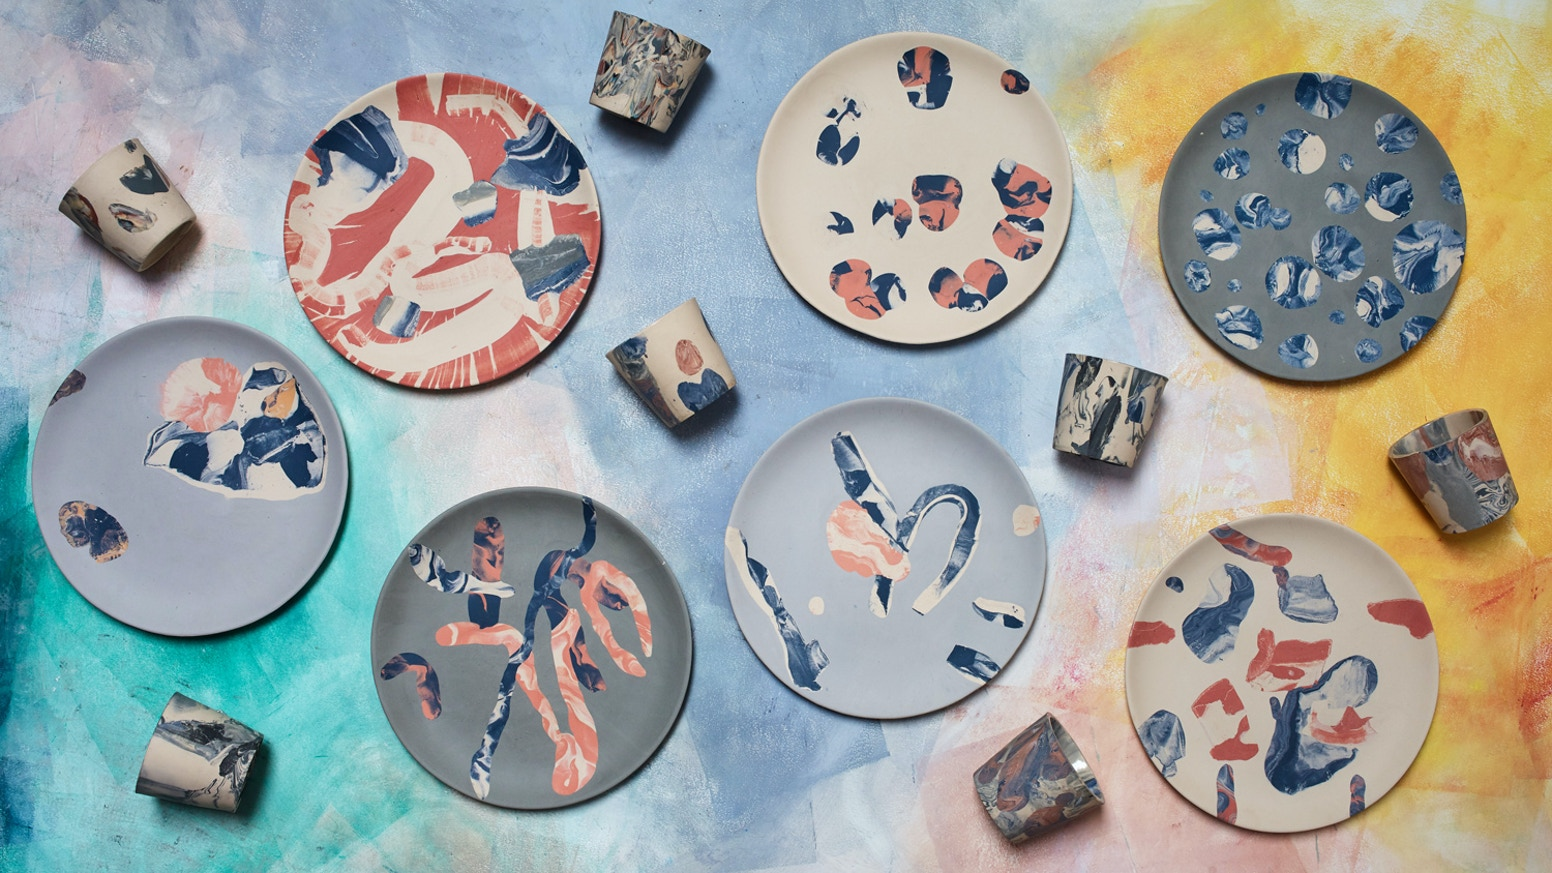 Colourful plates & cups made by squishing clay in a hydraulic press. Handmade in Liverpool. Each one is unique.